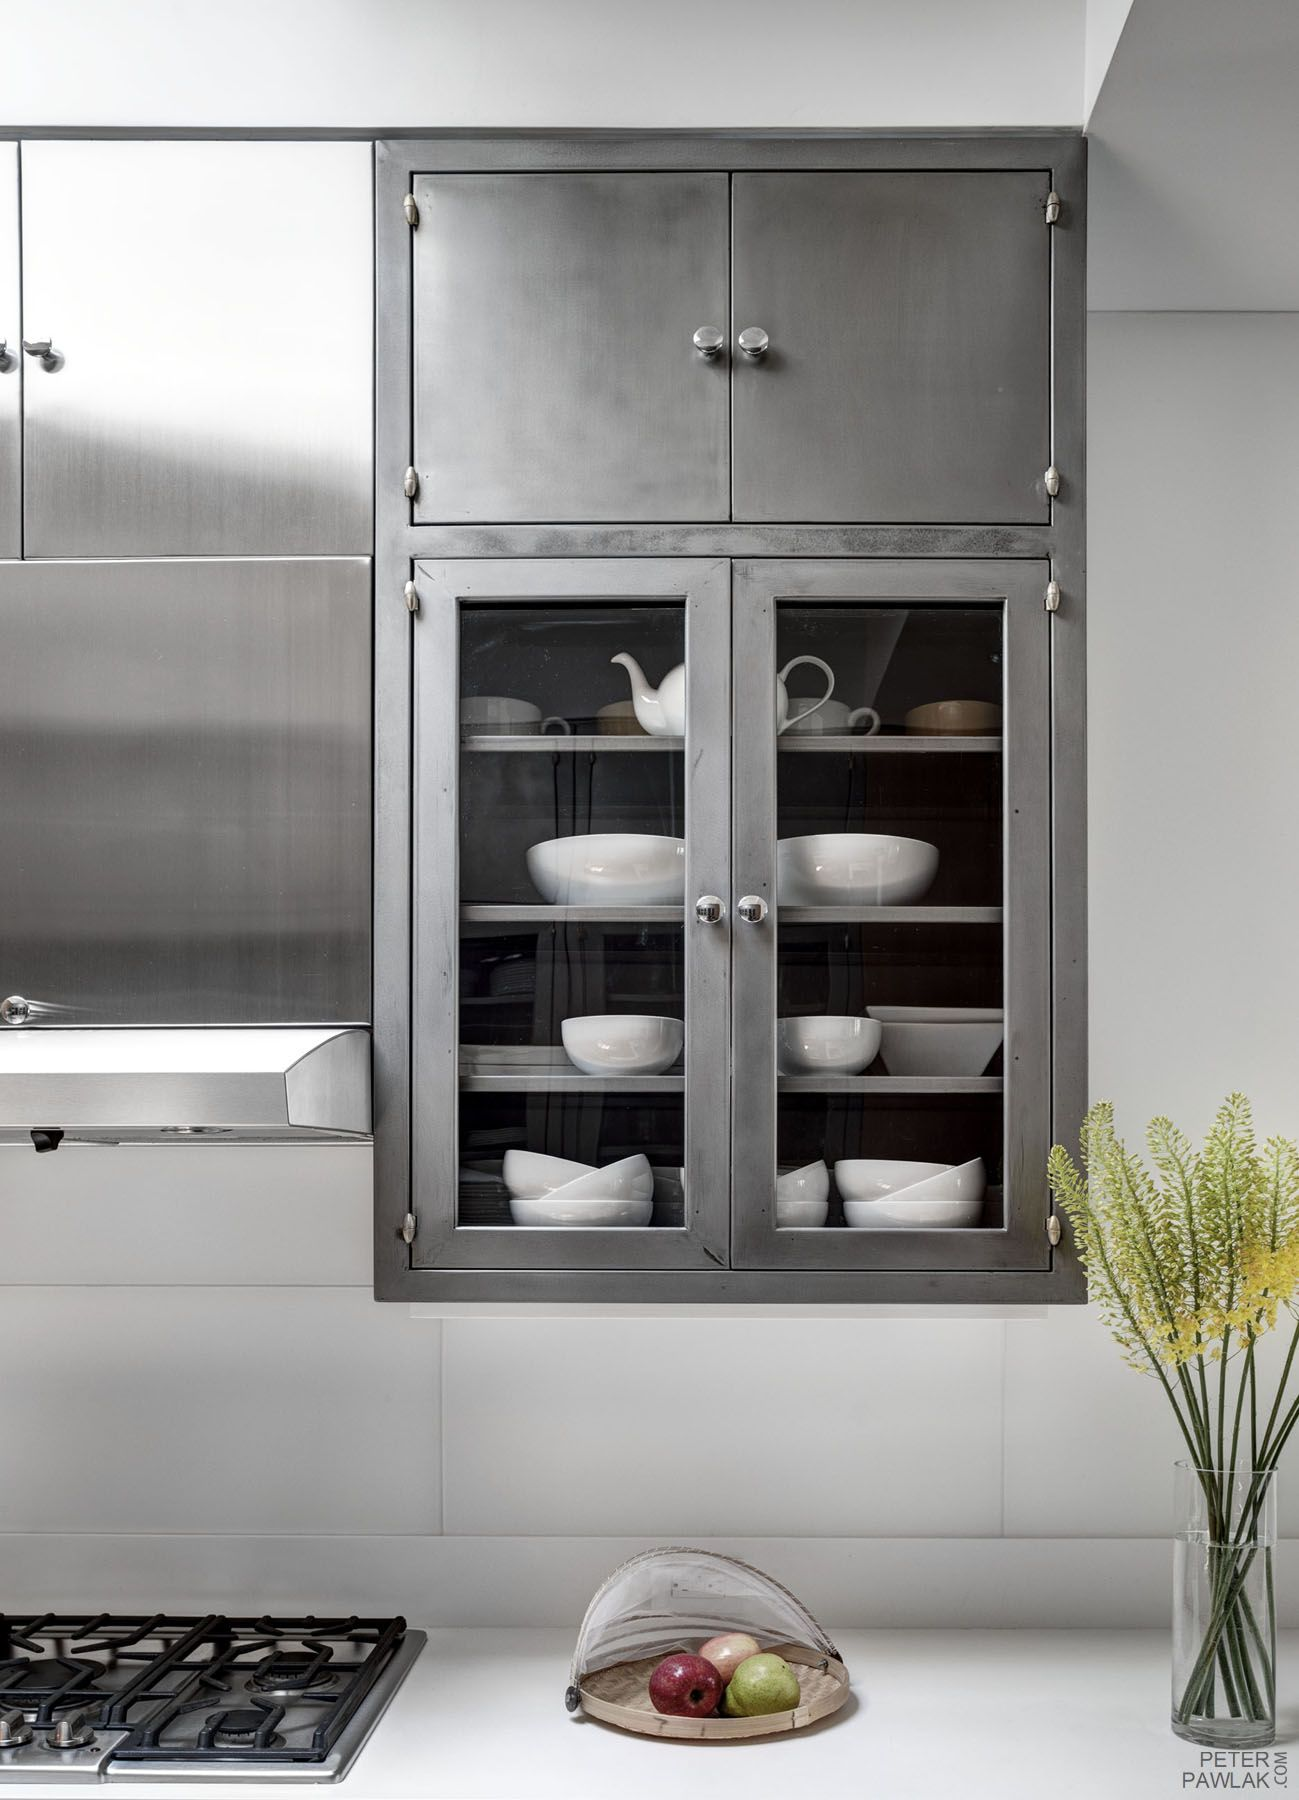 Old metal cabinets in white backdrop. | Metal kitchen ...